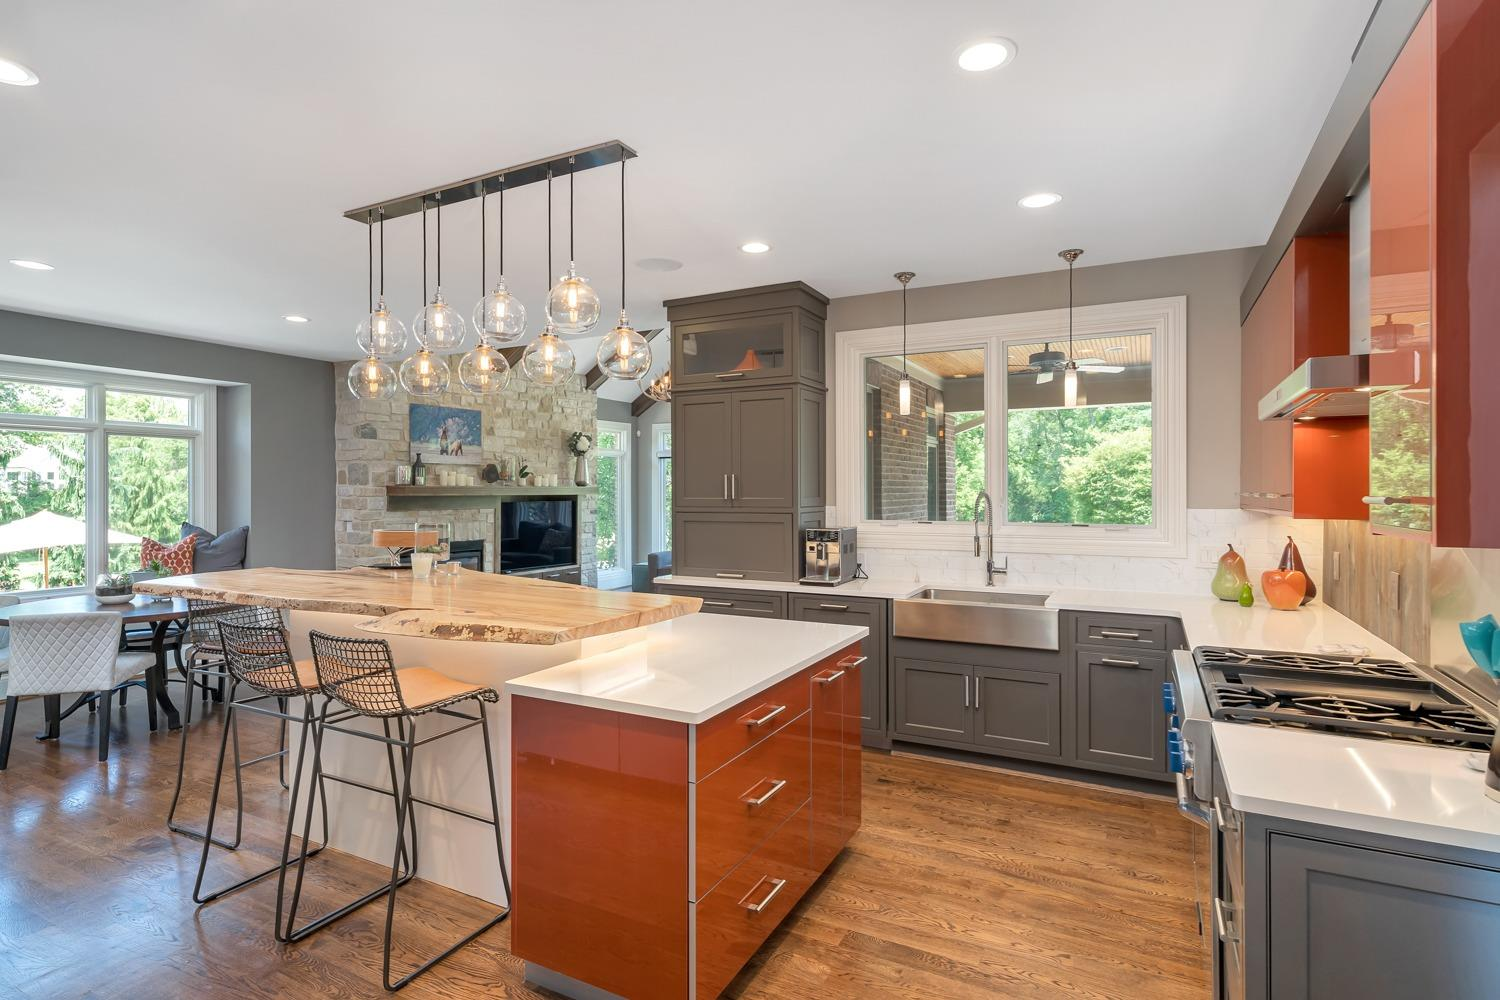 Kitchen featured in remodeling section of House Trends magazine (Nov/Dec 2017 ed.)